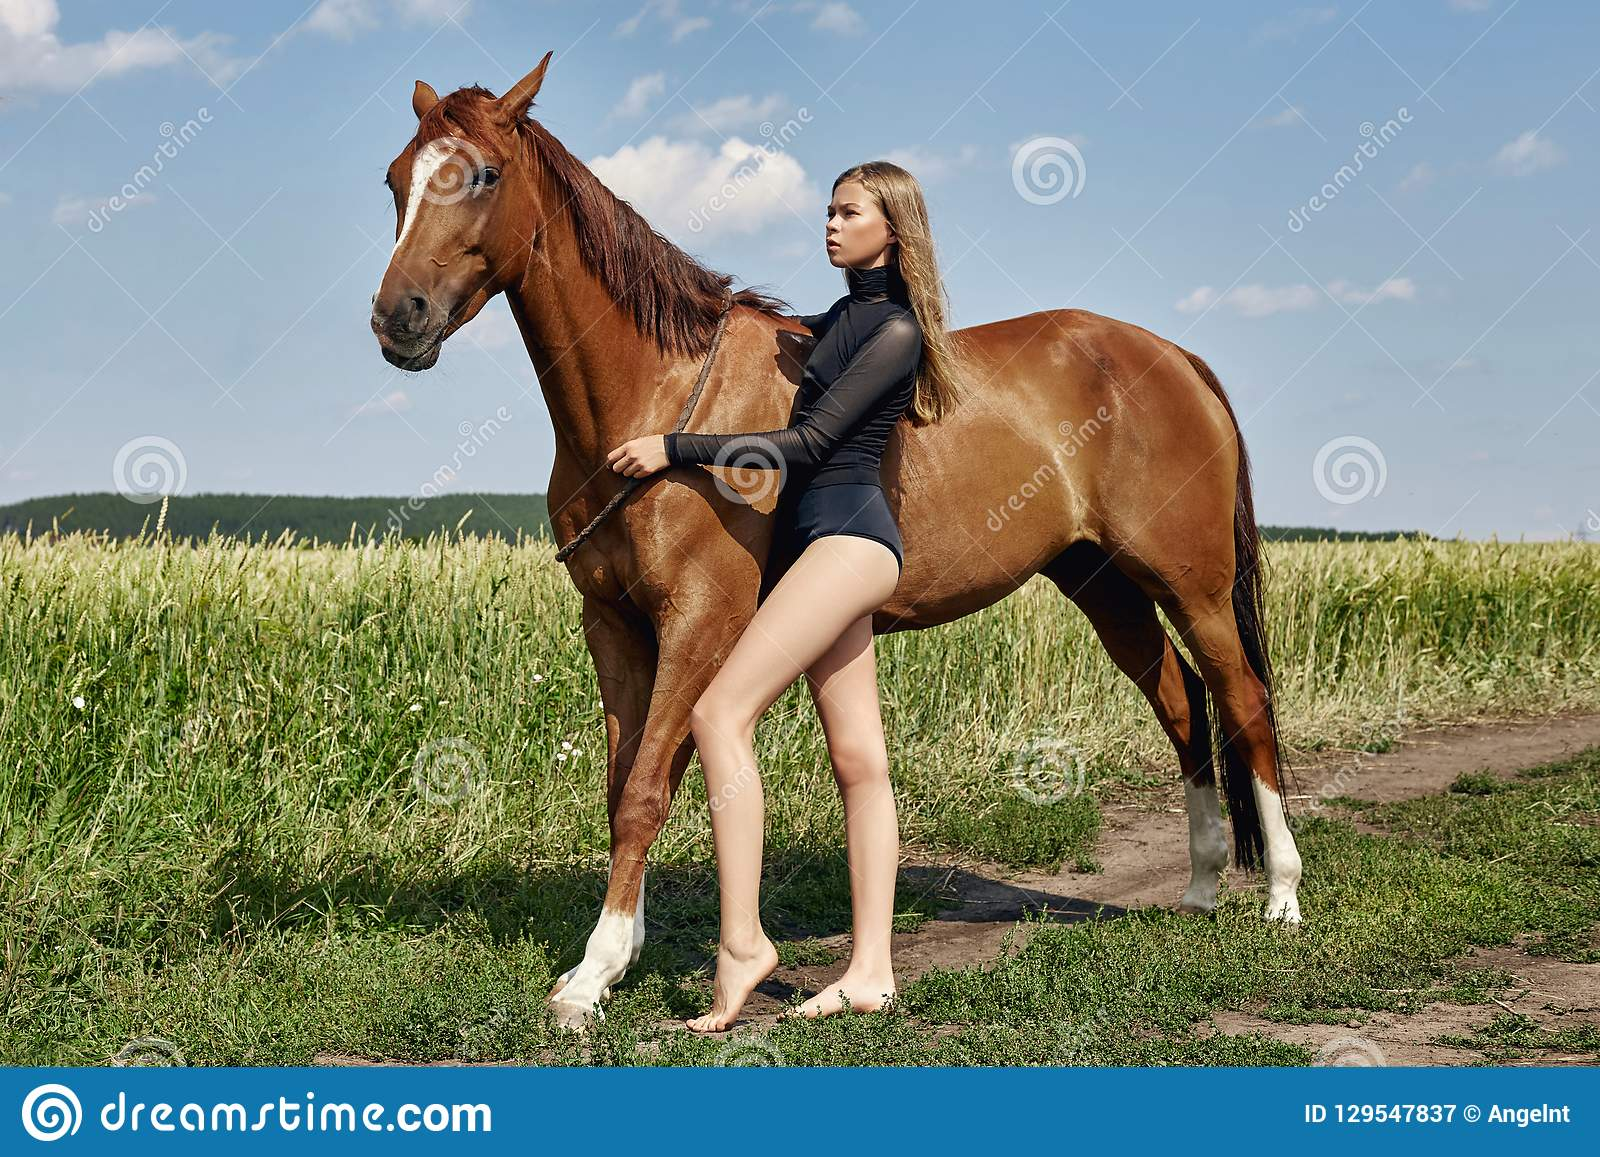 Girl rider stands next to the horse in the field. Fashion portrait of a woman and the mares are horses in the village in the grass